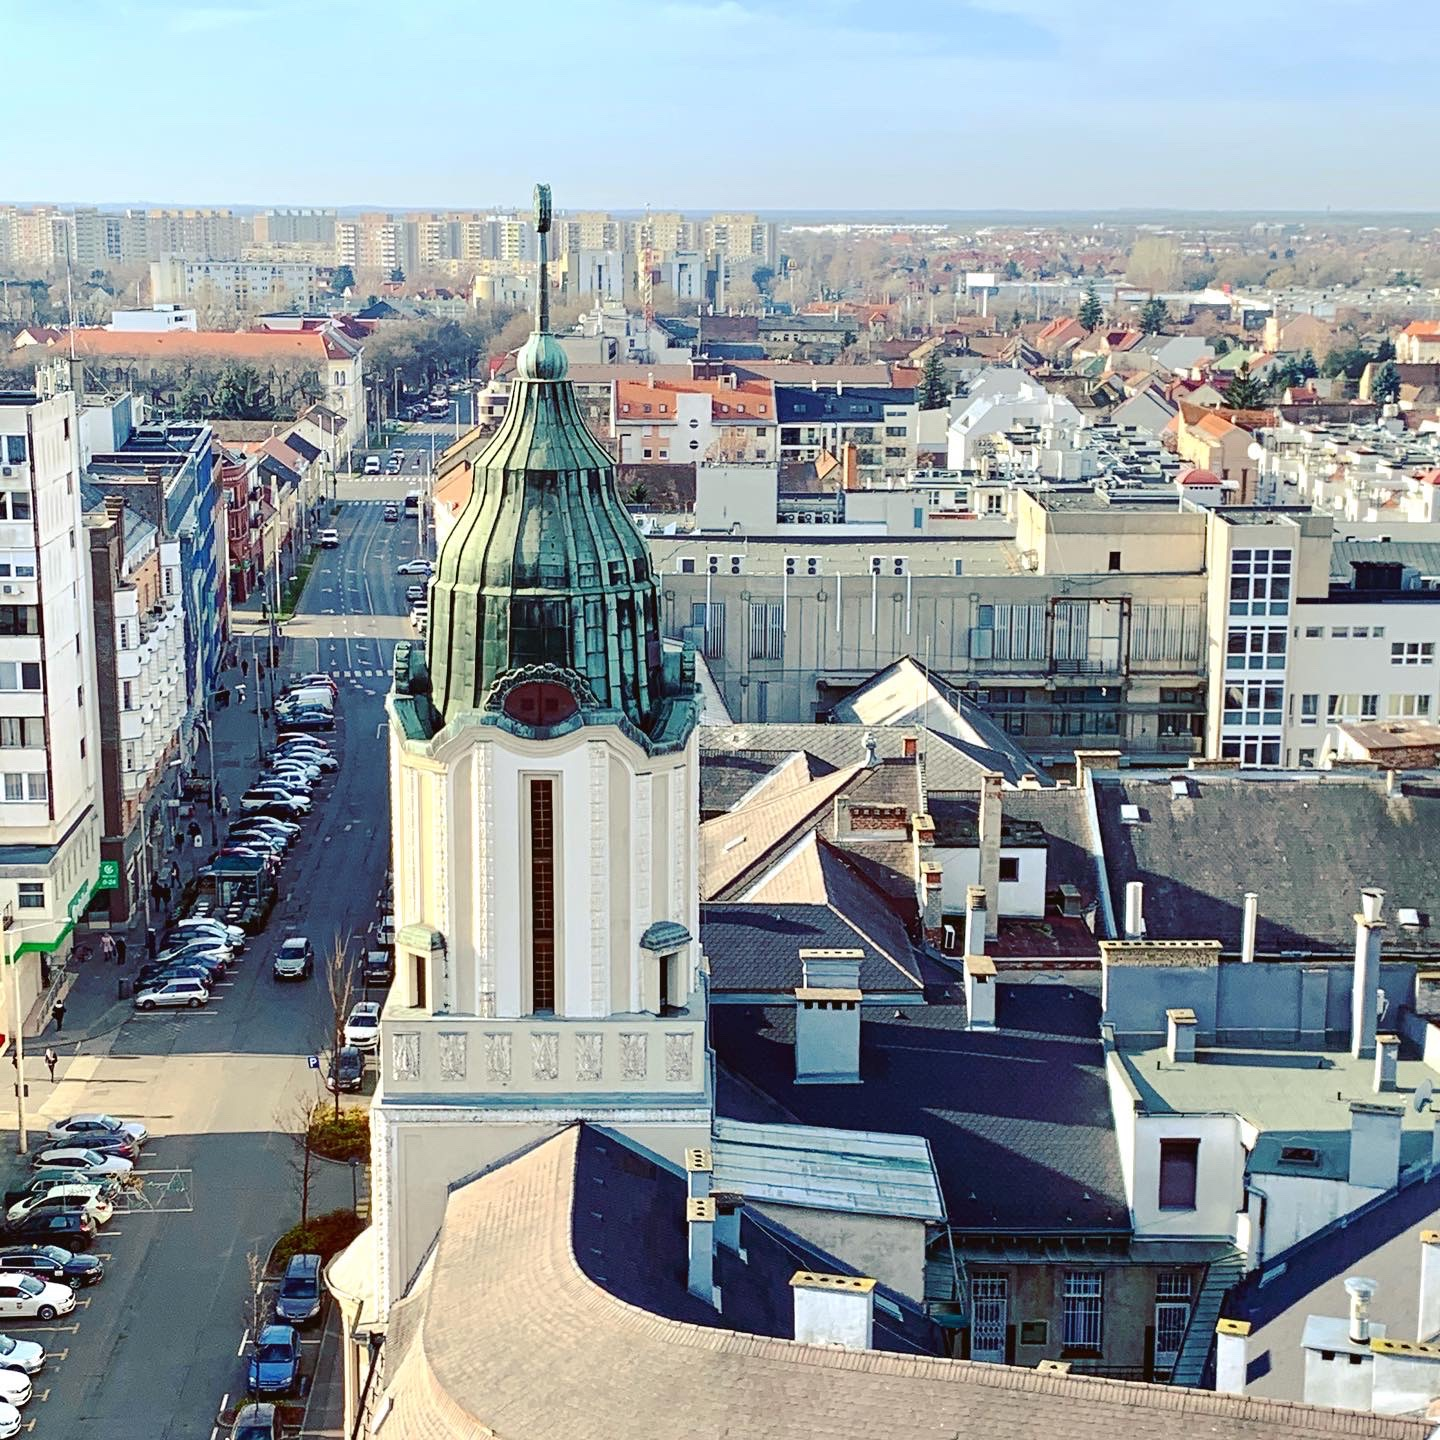 The view from the clock tower on the Reformed Great Church in Debrecen